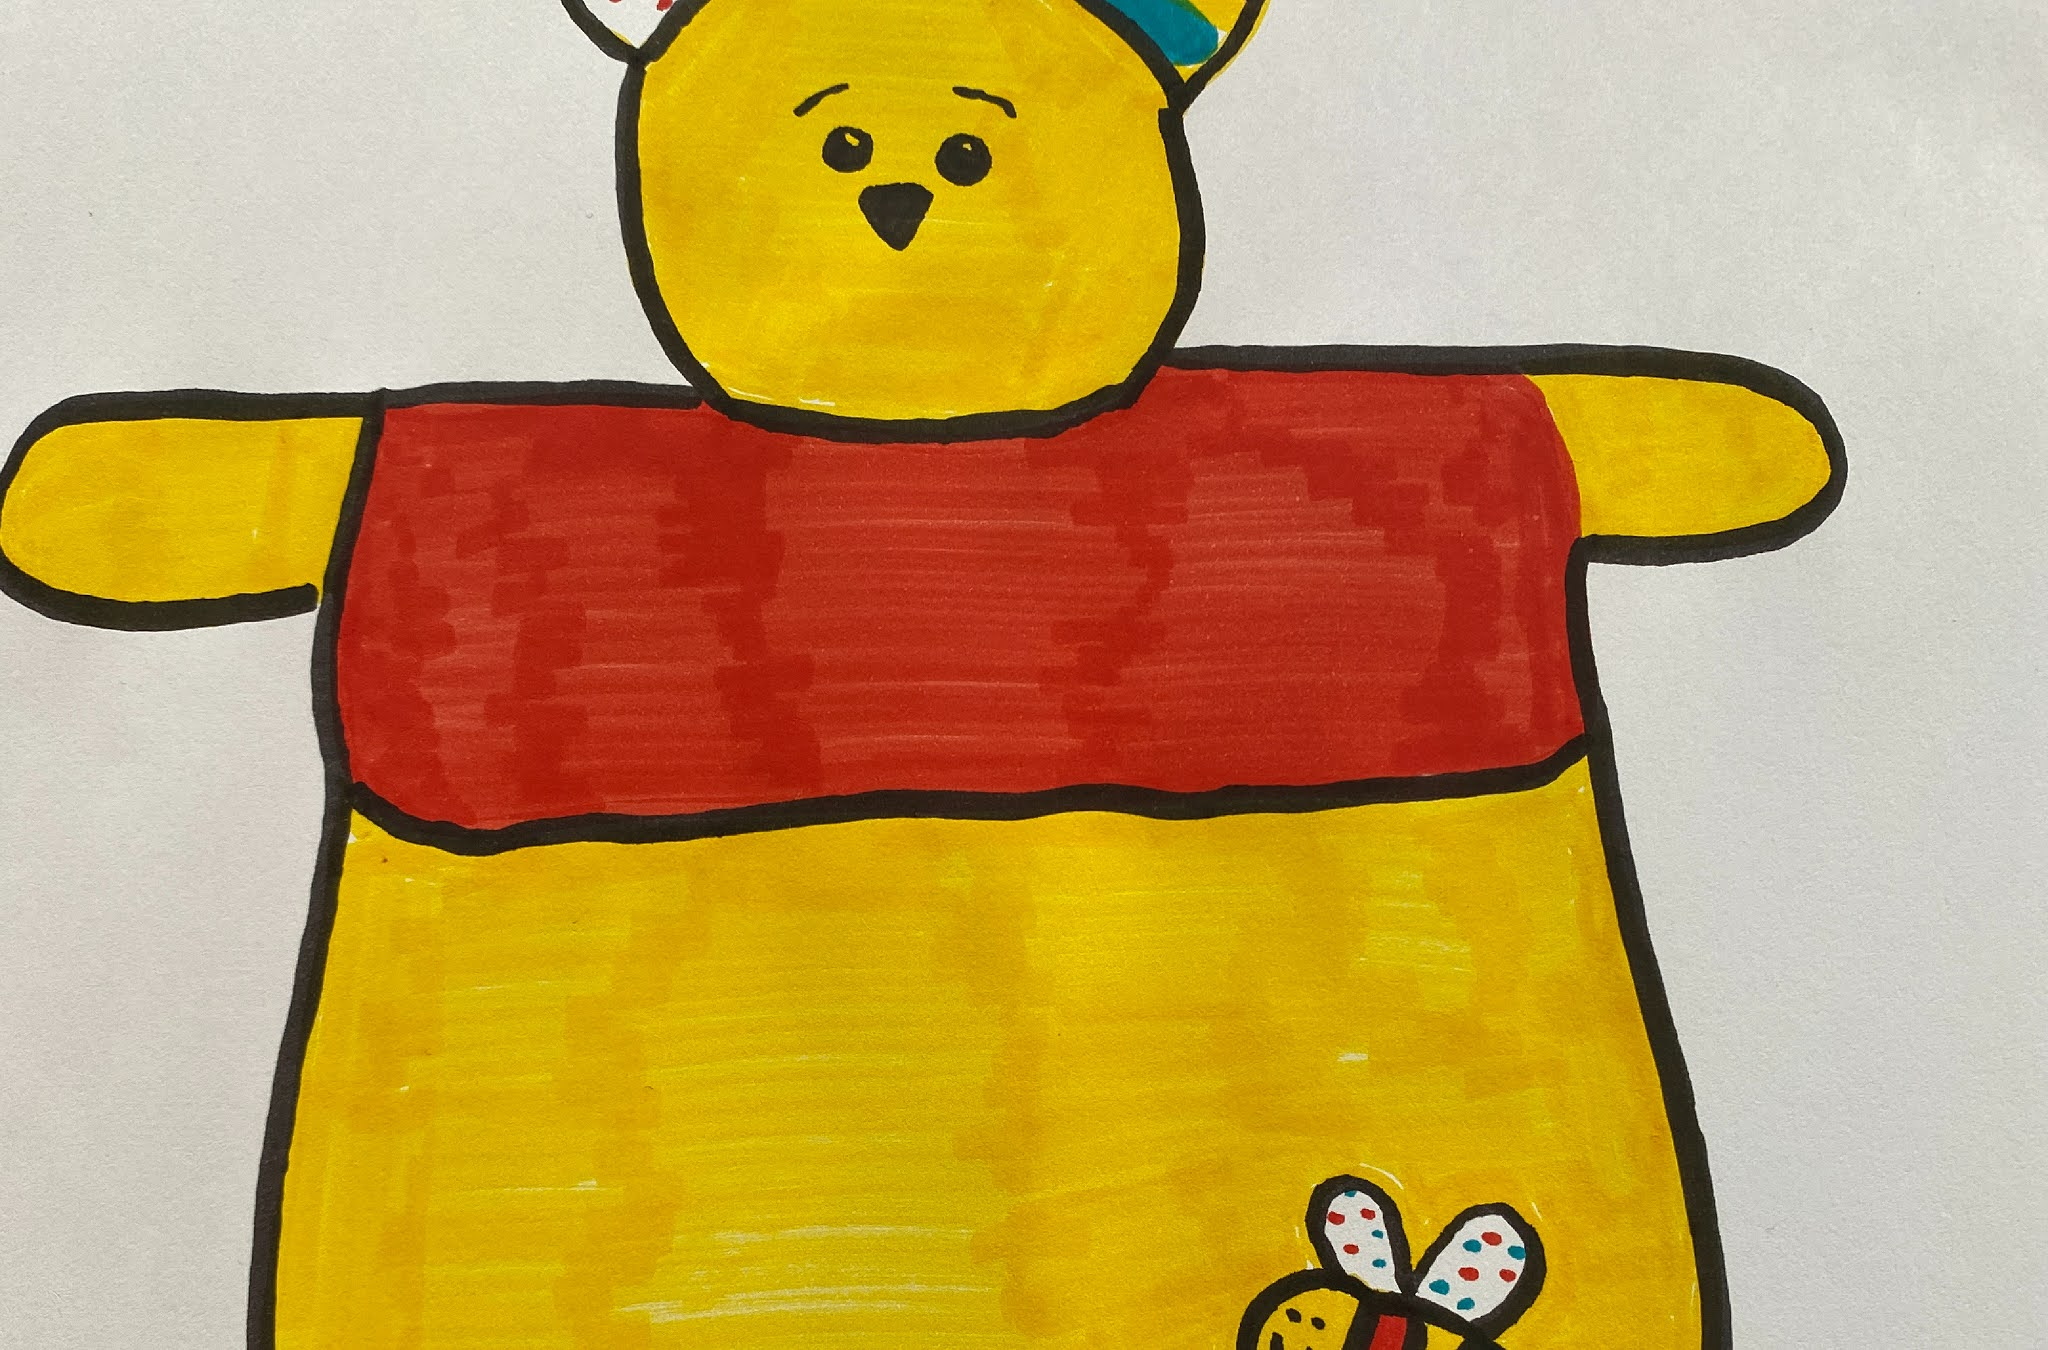 drawing of winnie the pooh taggy